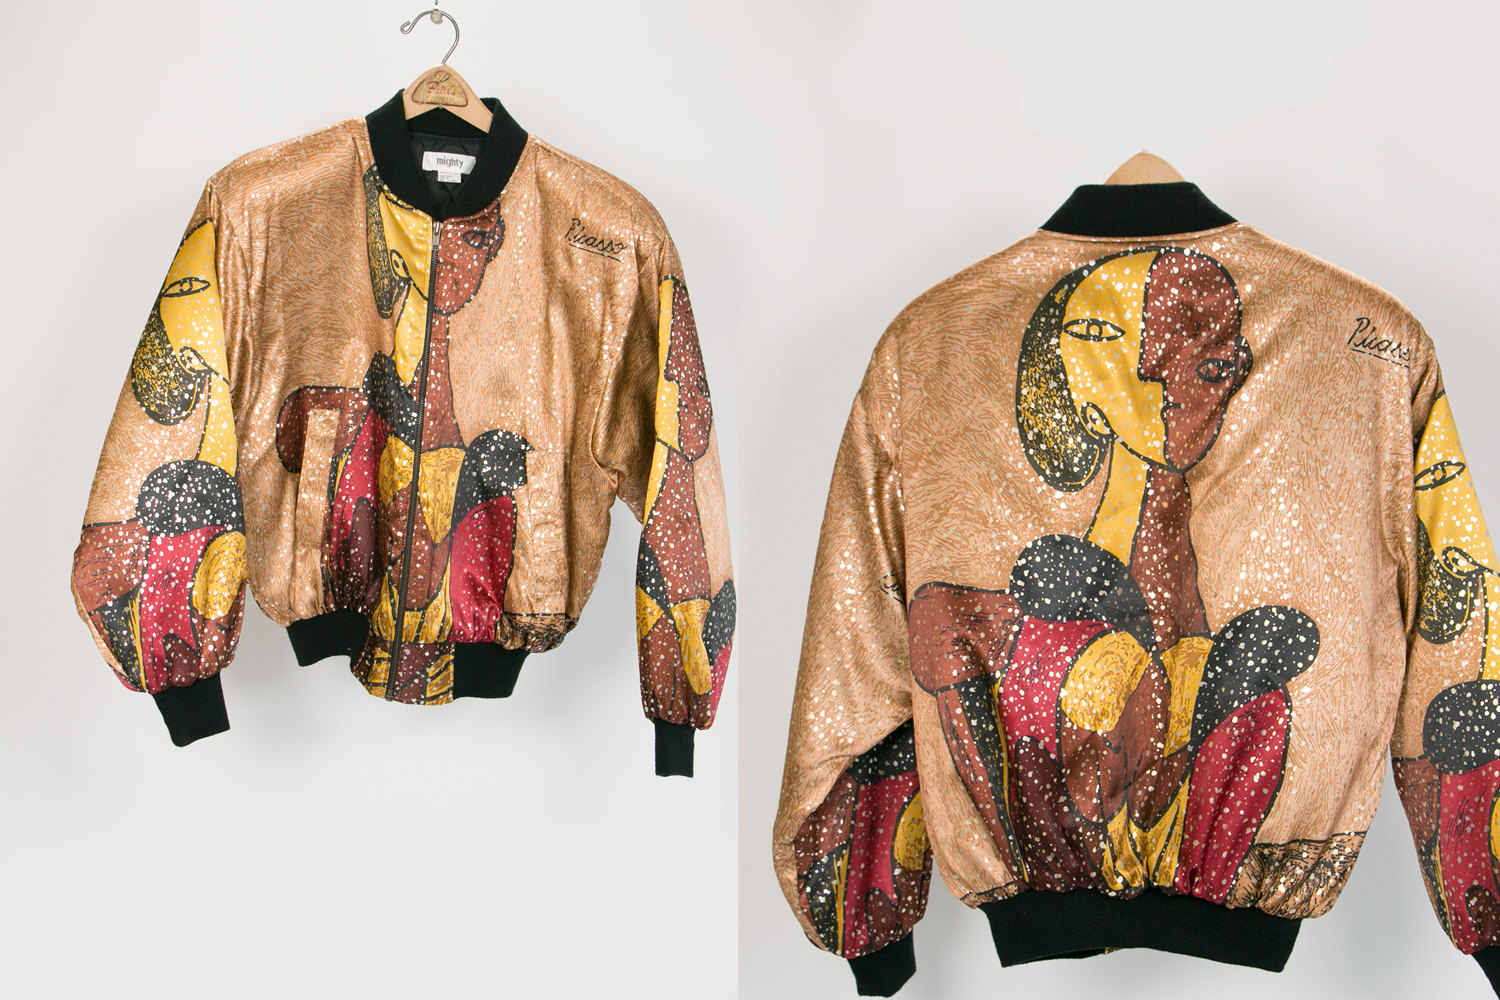 Vintage 1980's Mighty Picasso Jacket - Gold, Burgundy, Black - Shoulder Pads and Amazing Graphics!  - Retro, Hipster, New Wave